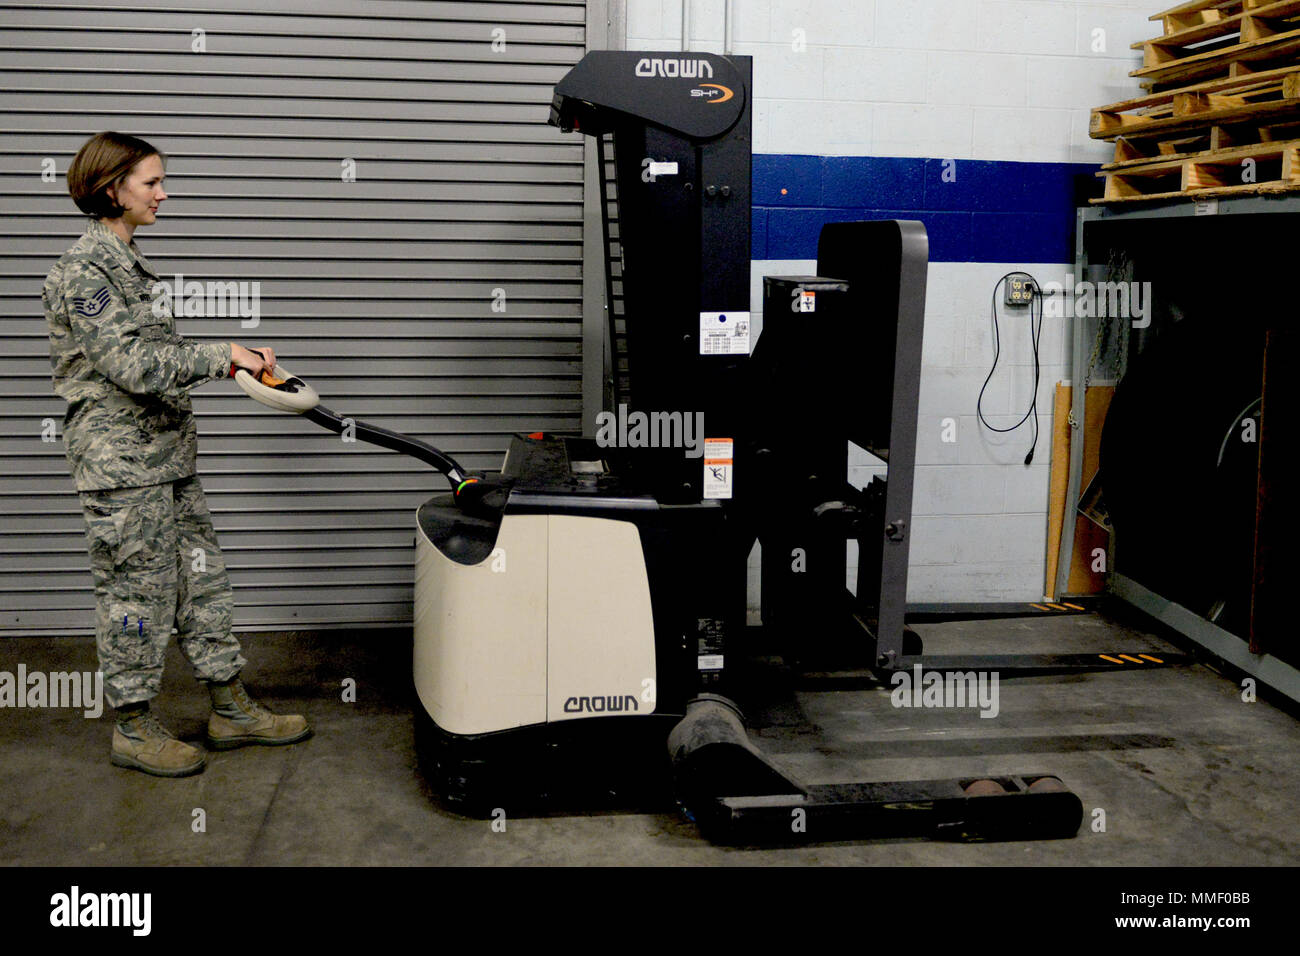 Staff Sgt. Destine White, 55th Logistics Readiness Squadron NCO in charge of equipment accounts, operates a forklift in the Bennie L. Davis Maintenance Facility Warehouse Monday, Oct. 16, 2017, on Offutt Air Force Base, Nebraska. Members of the logistics unit must undergo special training to operate machinery such as the forklift. (U.S. Air Force photo by Tech. Sgt. Rachelle Blake) - Stock Image